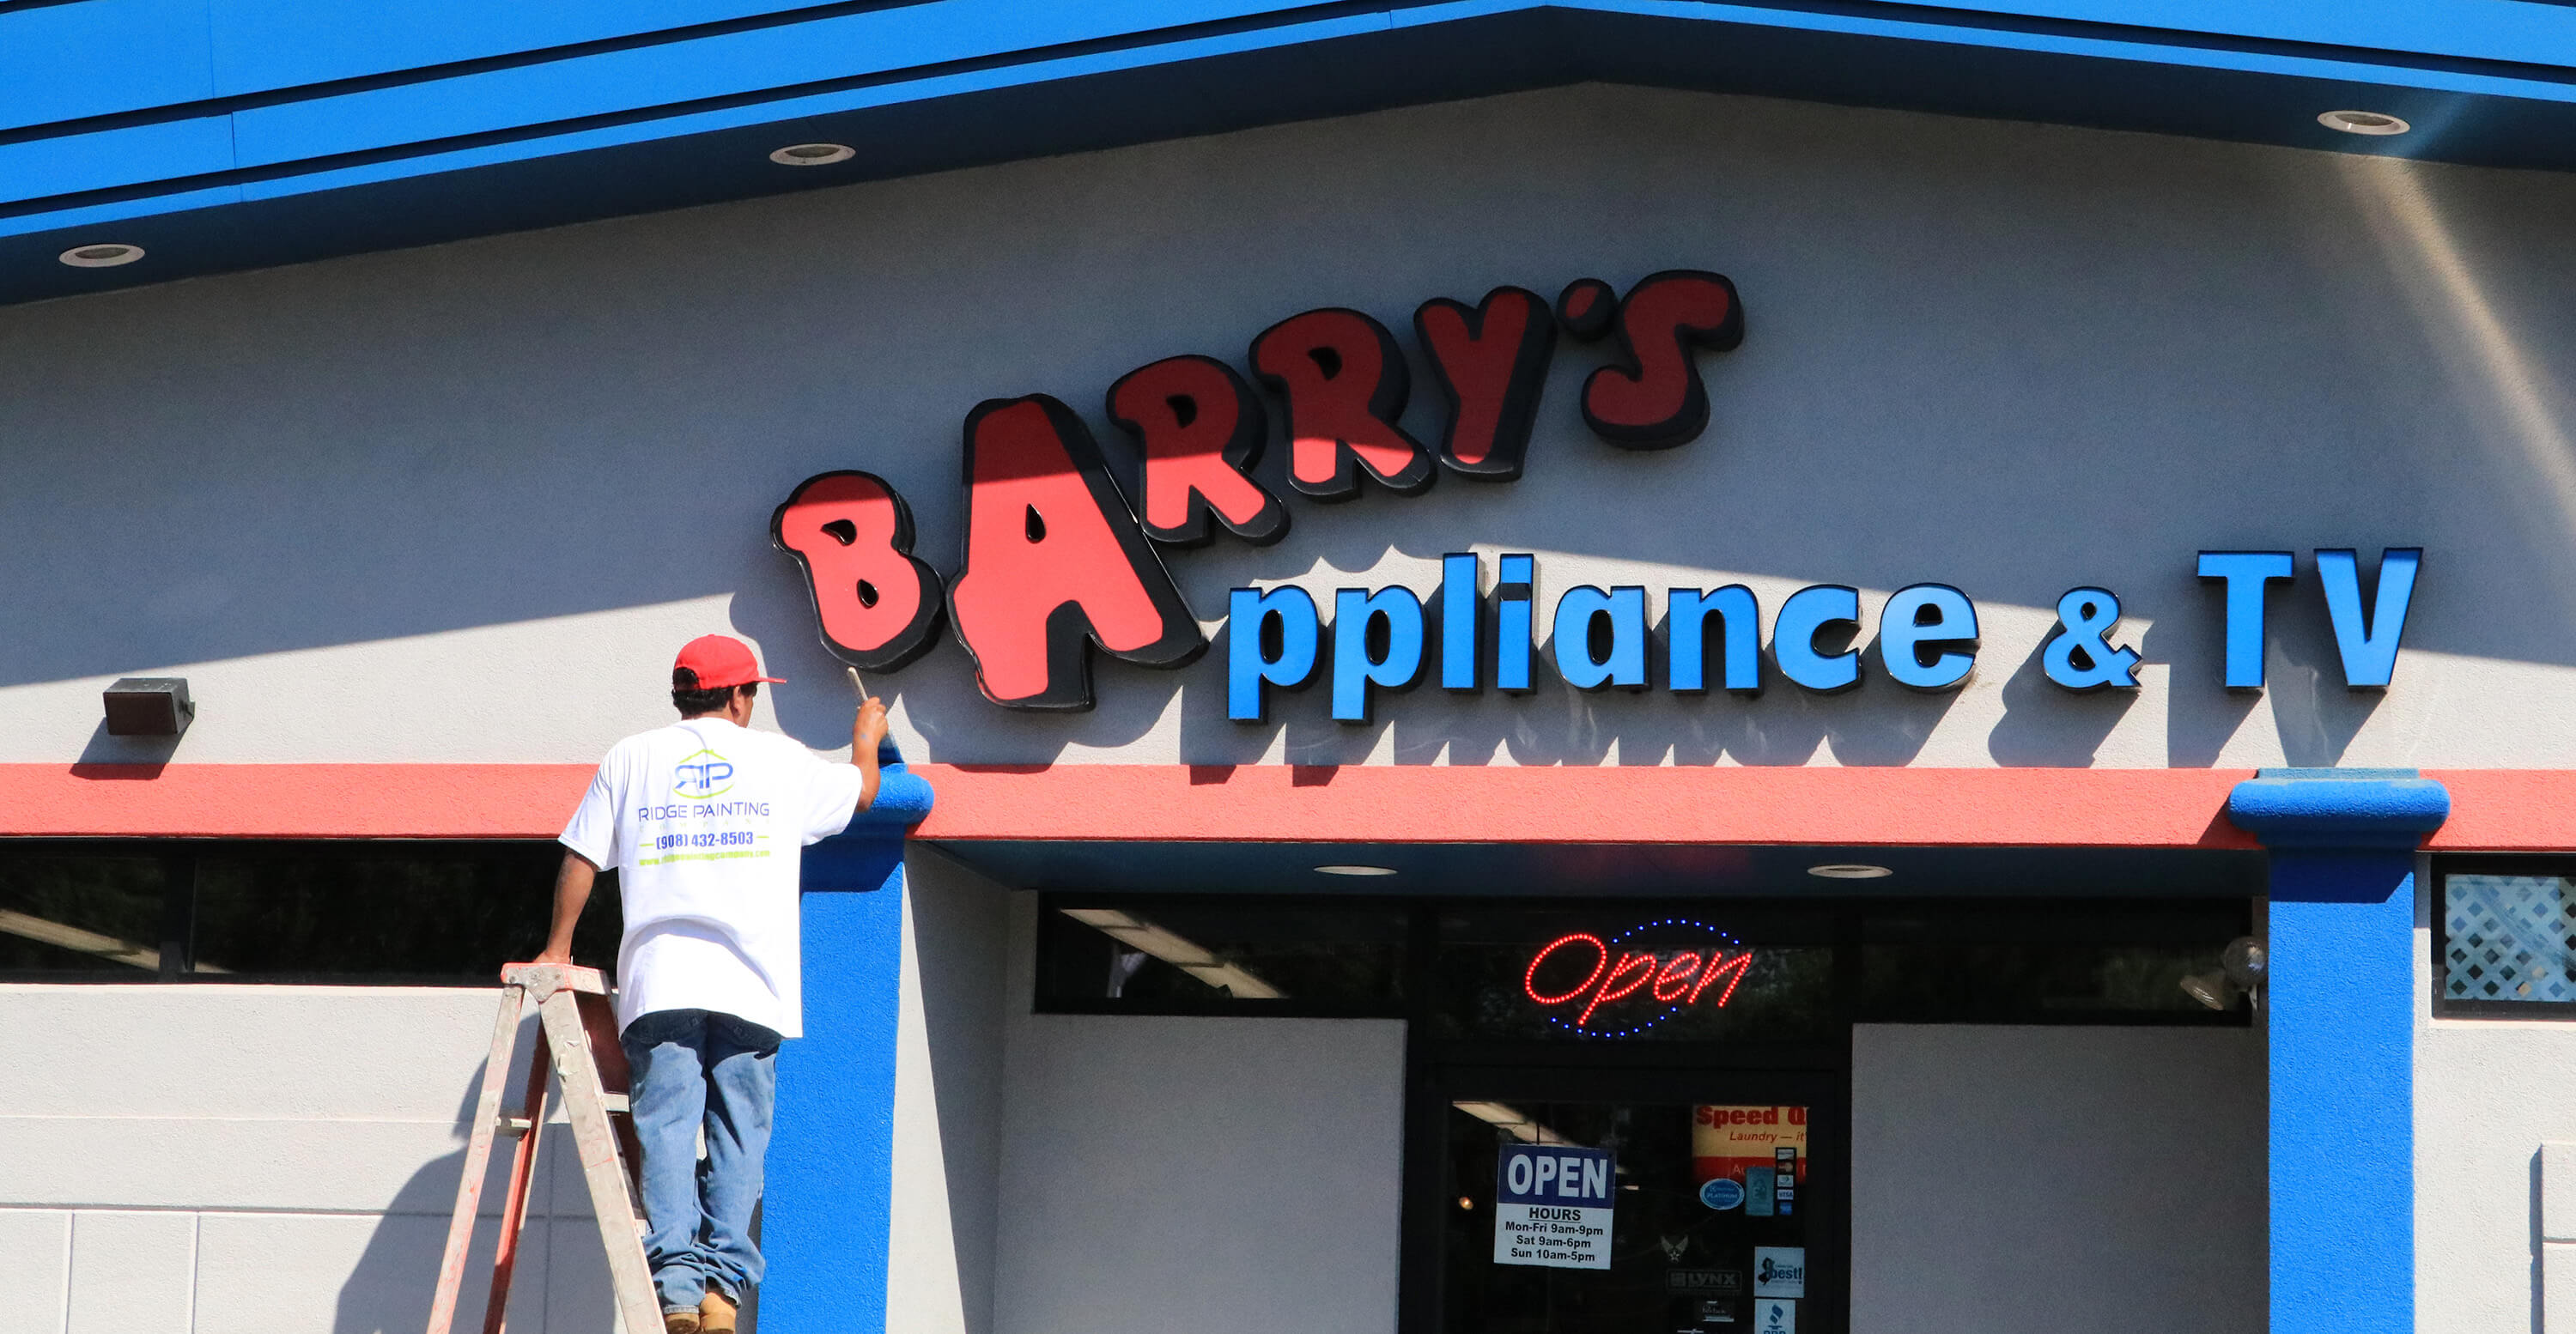 Barrys-Home-Page-Image-2